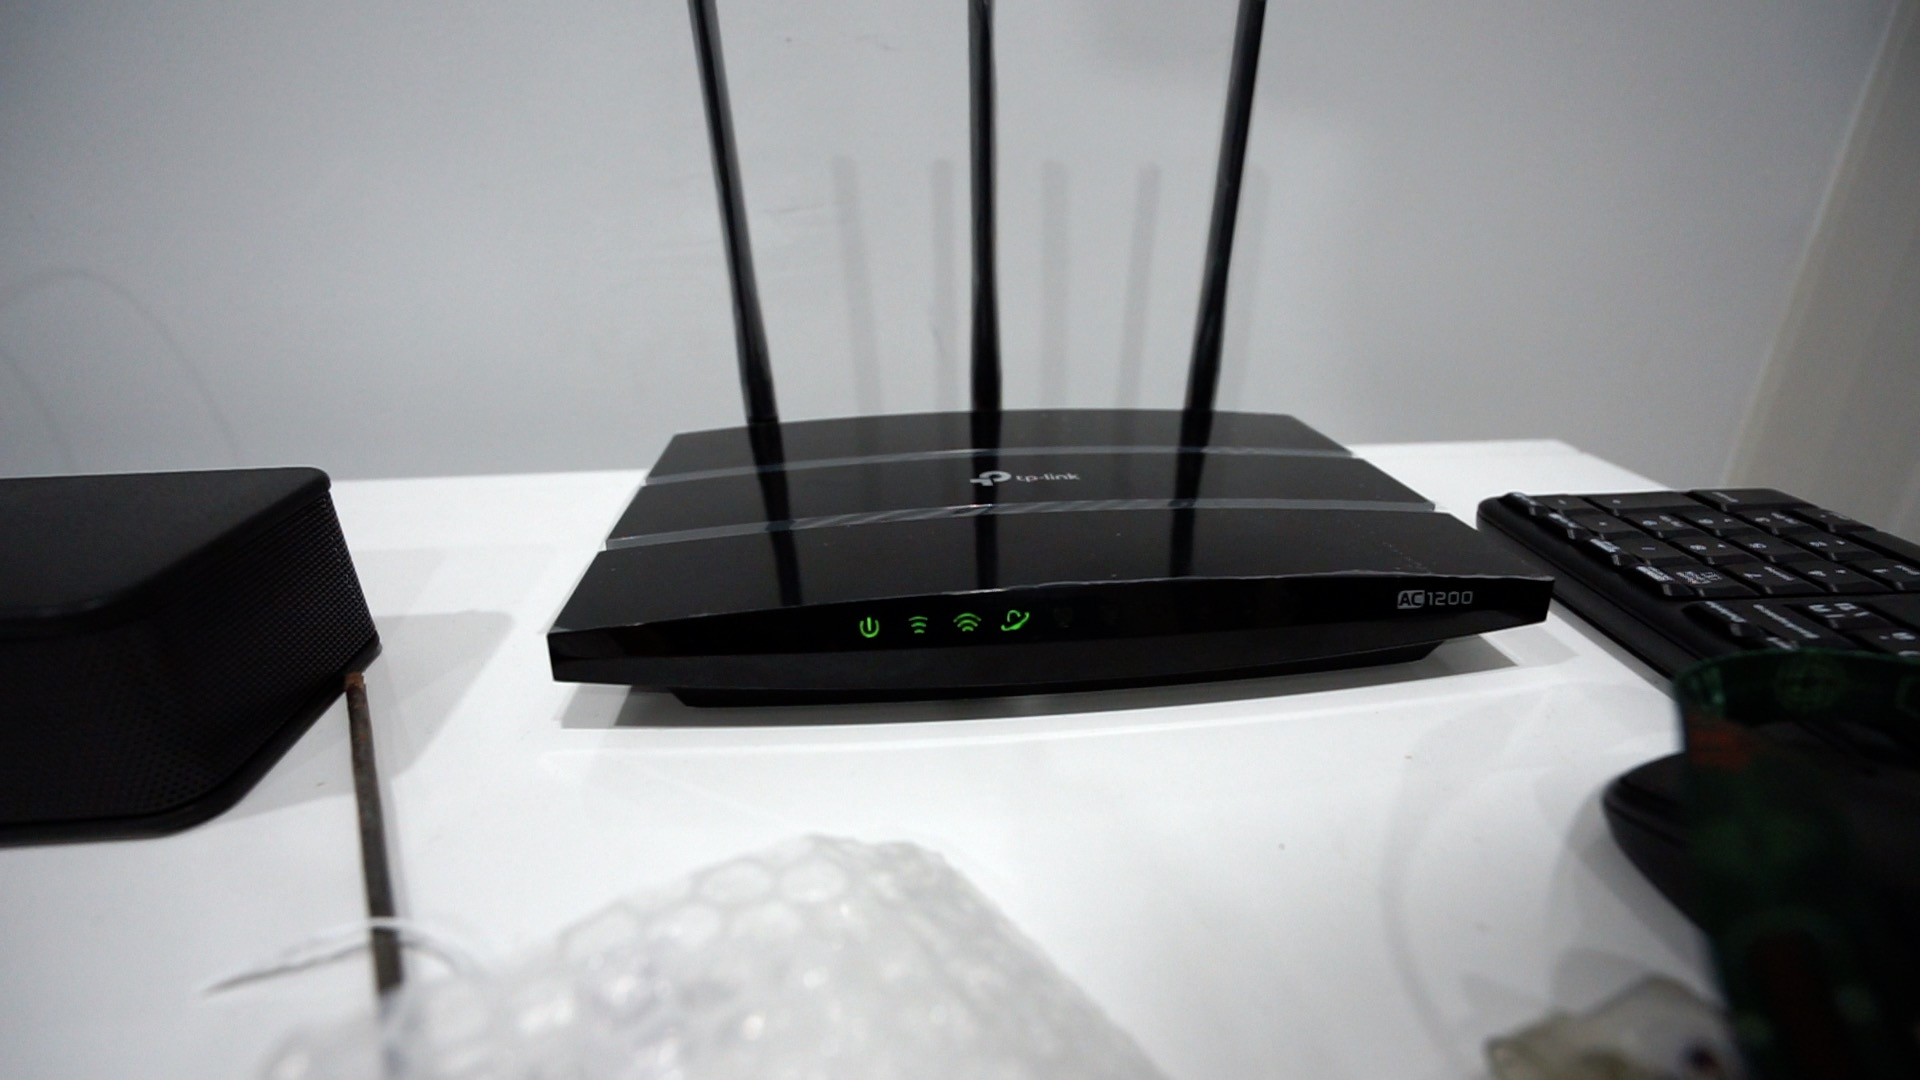 Access Point from TP-Link